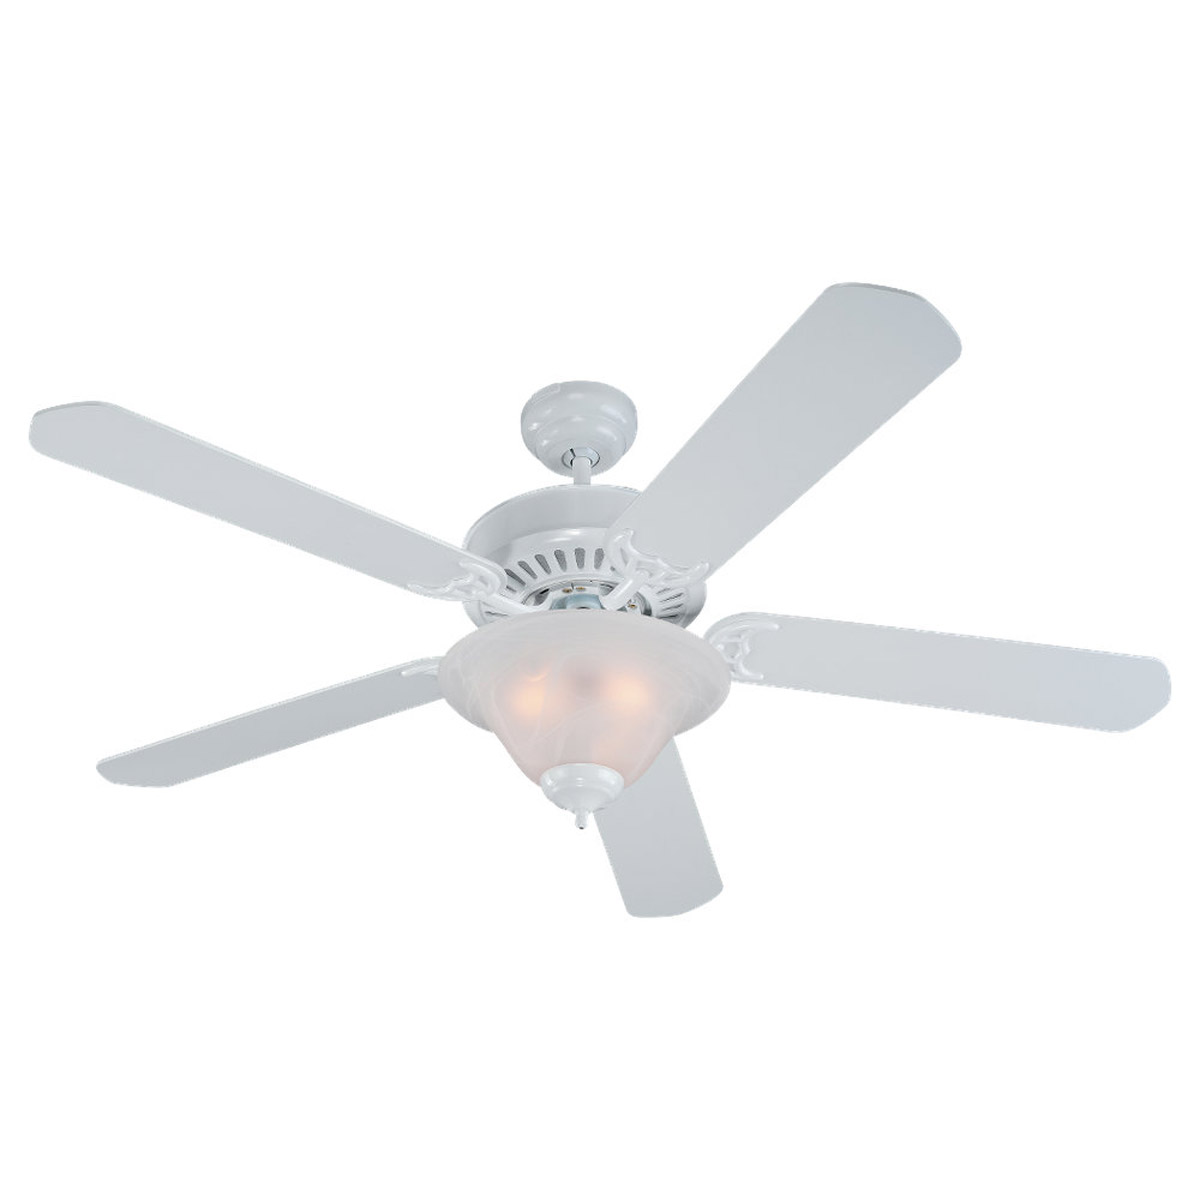 Sea Gull Lighting 3 Light 52in Quality Pro Deluxe Ceiling Fan in White 15162B-15 photo